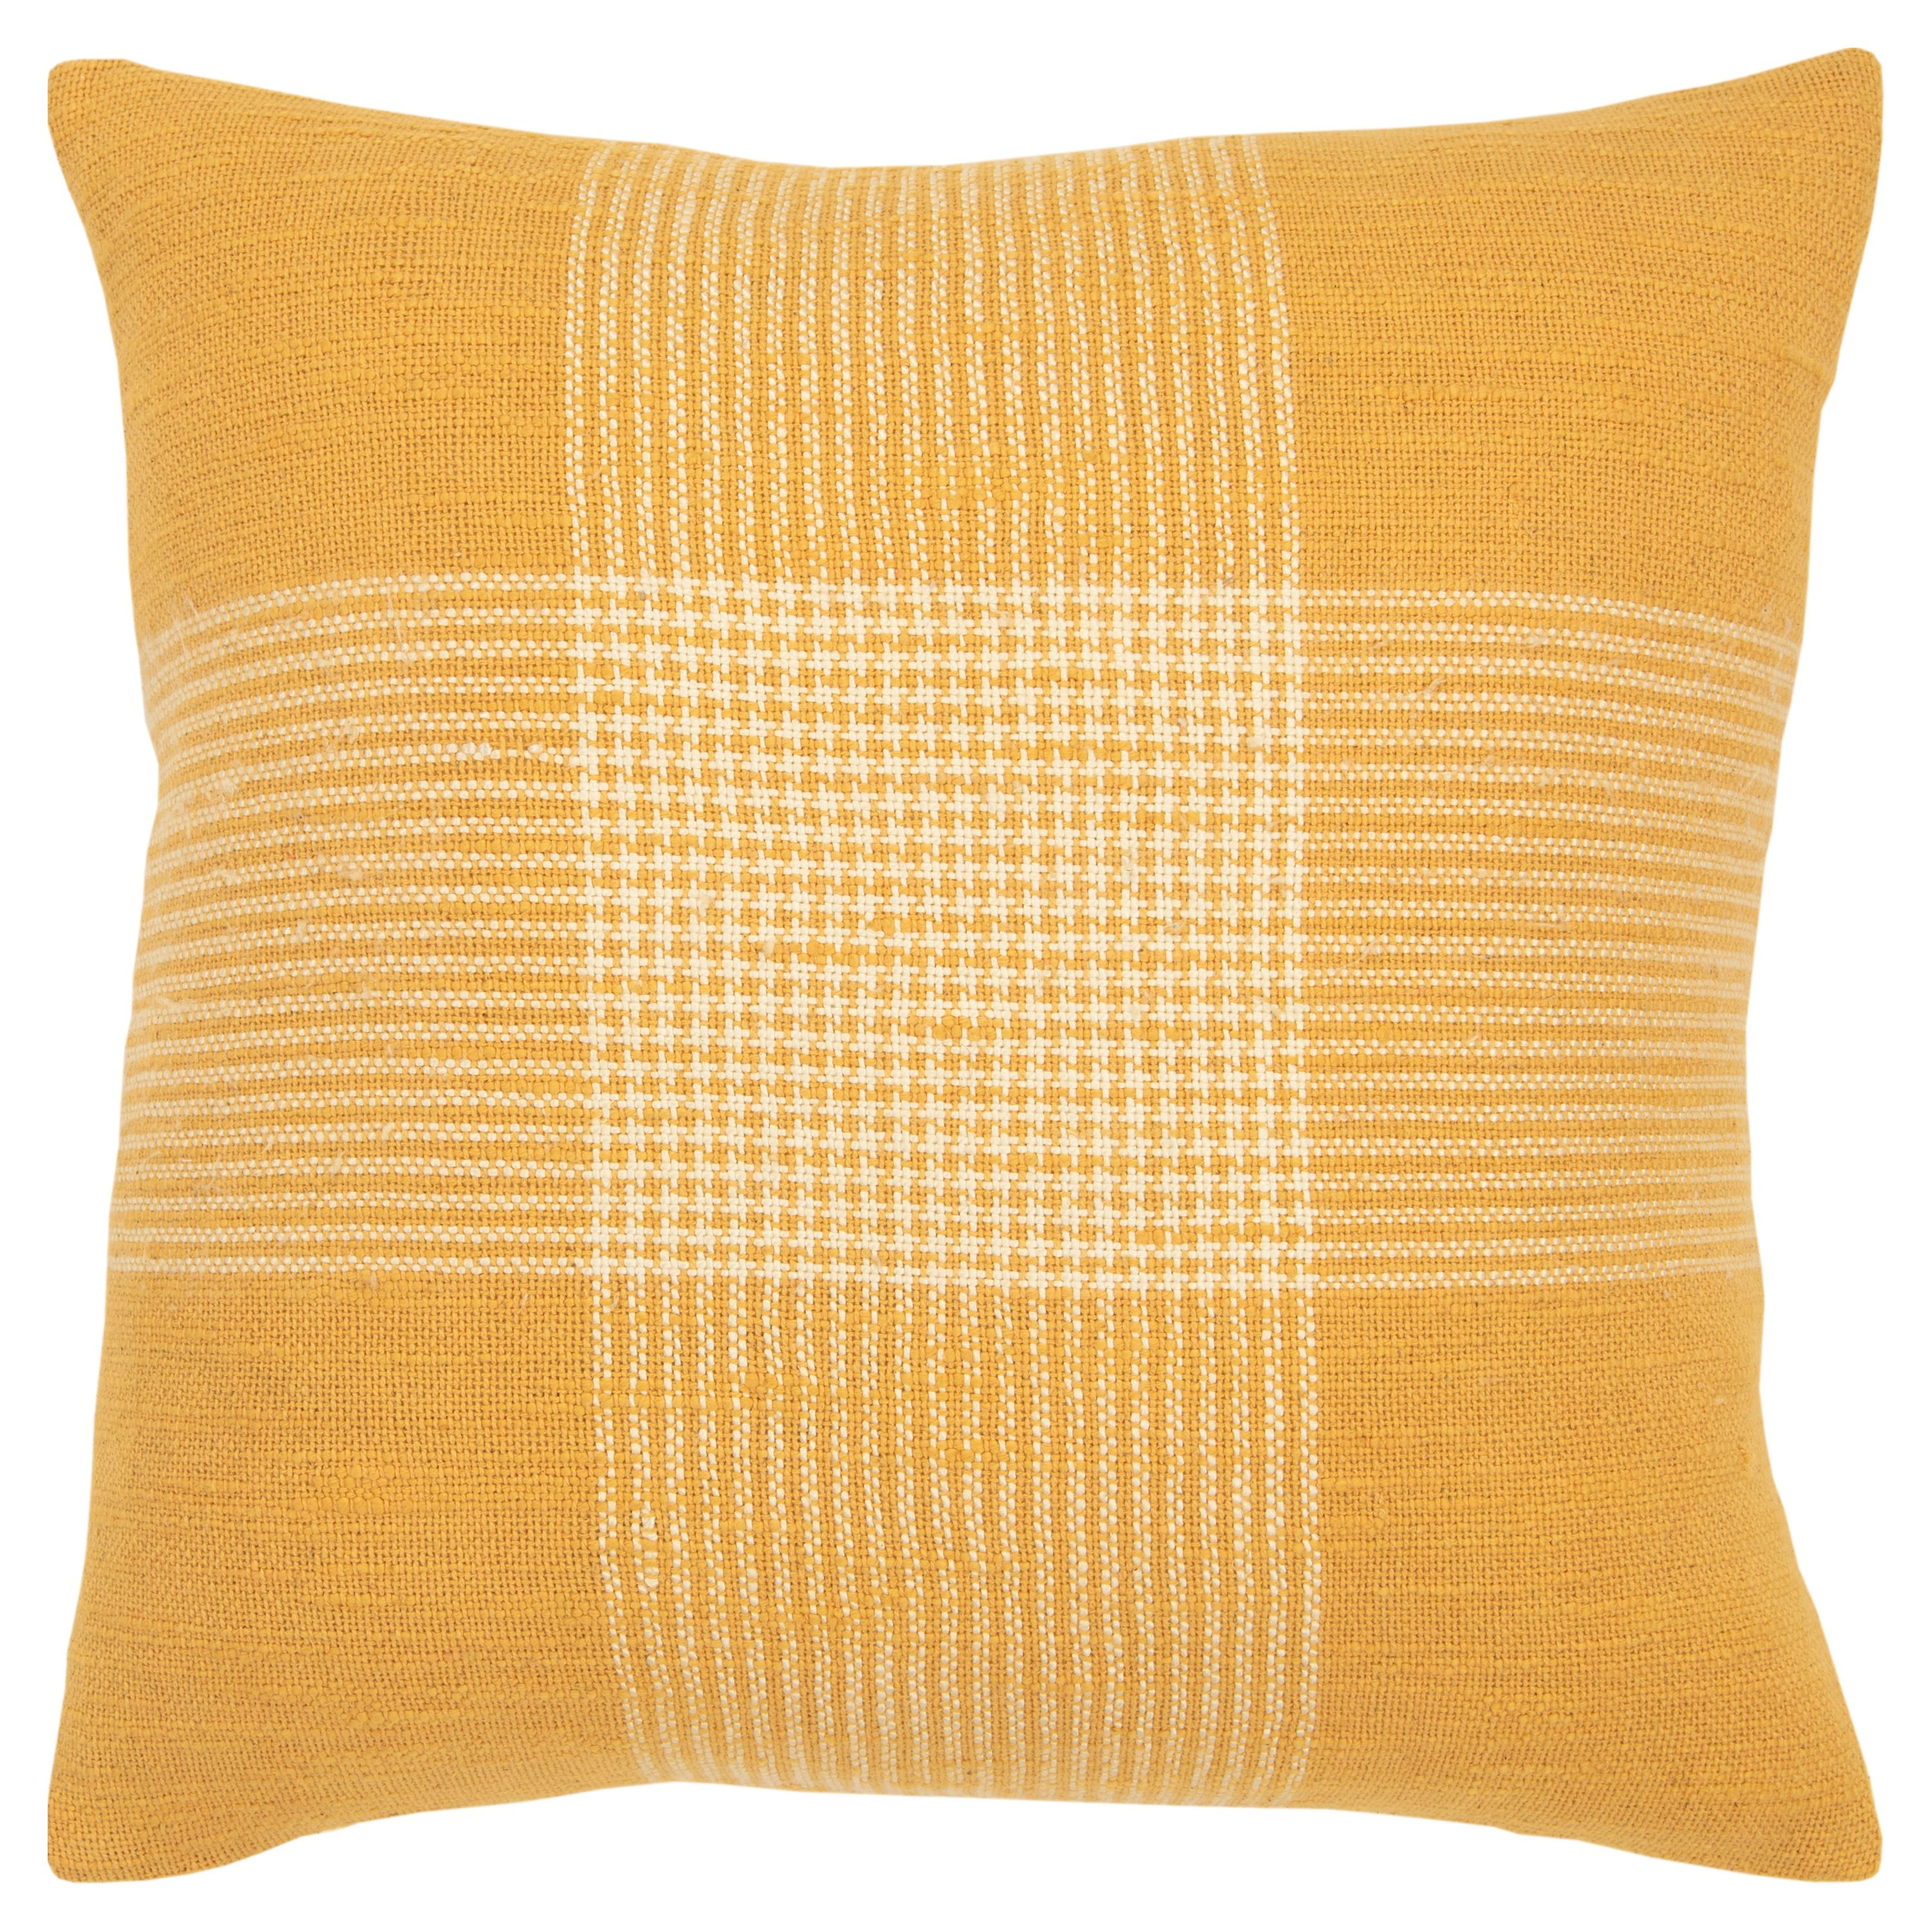 """Rizzy Home Decorative Down Filled Throw Pillow Plaid 20""""X20"""" Yellow"""